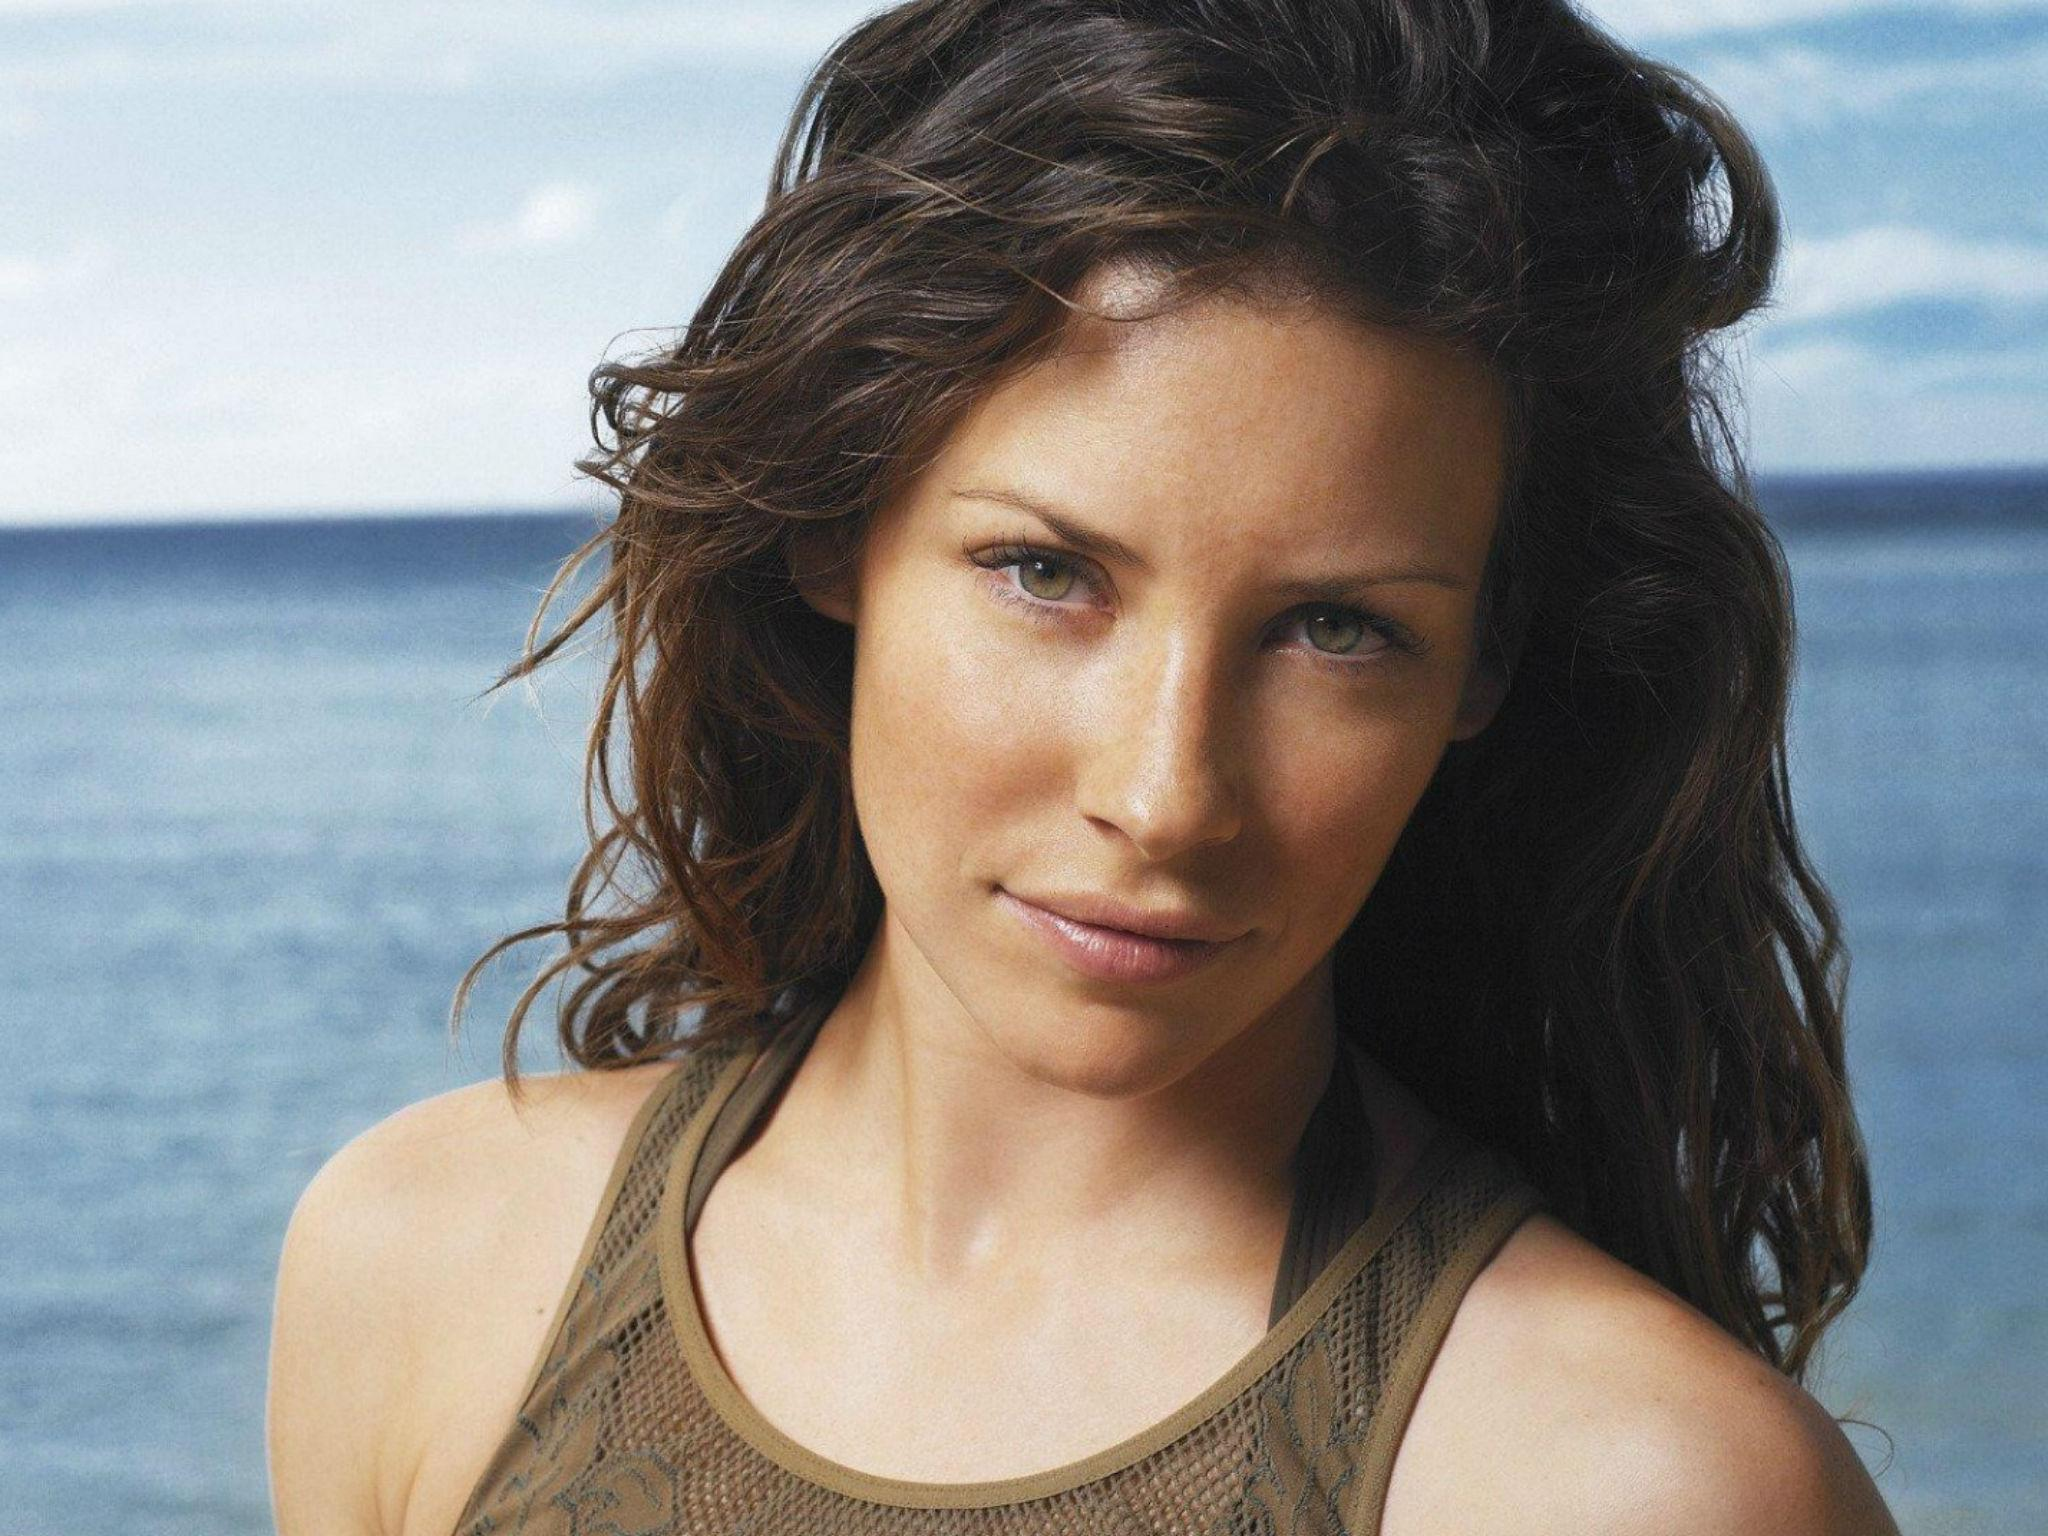 Foto Evangeline Lilly nude photos 2019